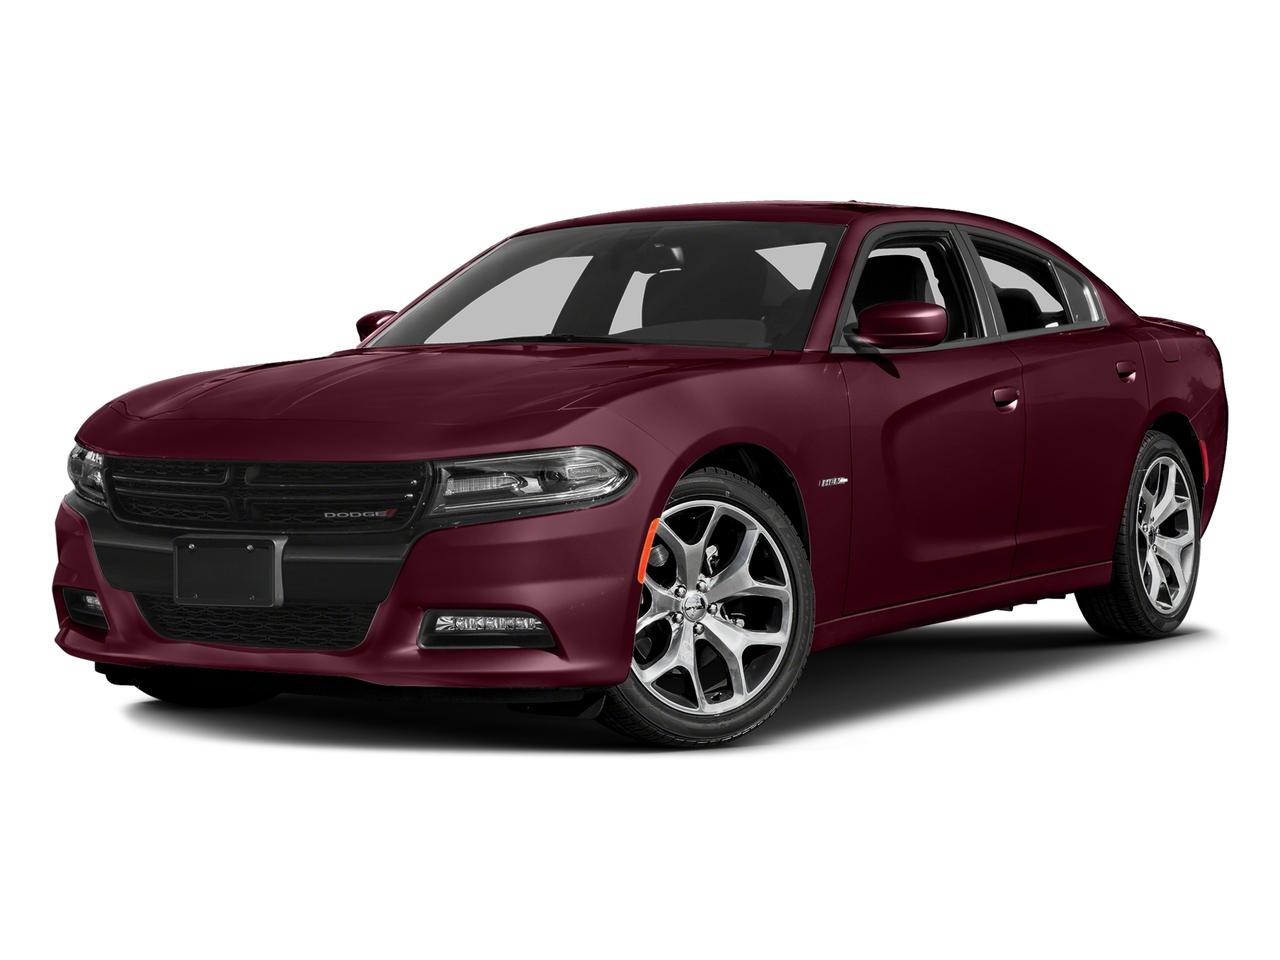 2017 Dodge Charger Vehicle Photo in Midland, TX 79703